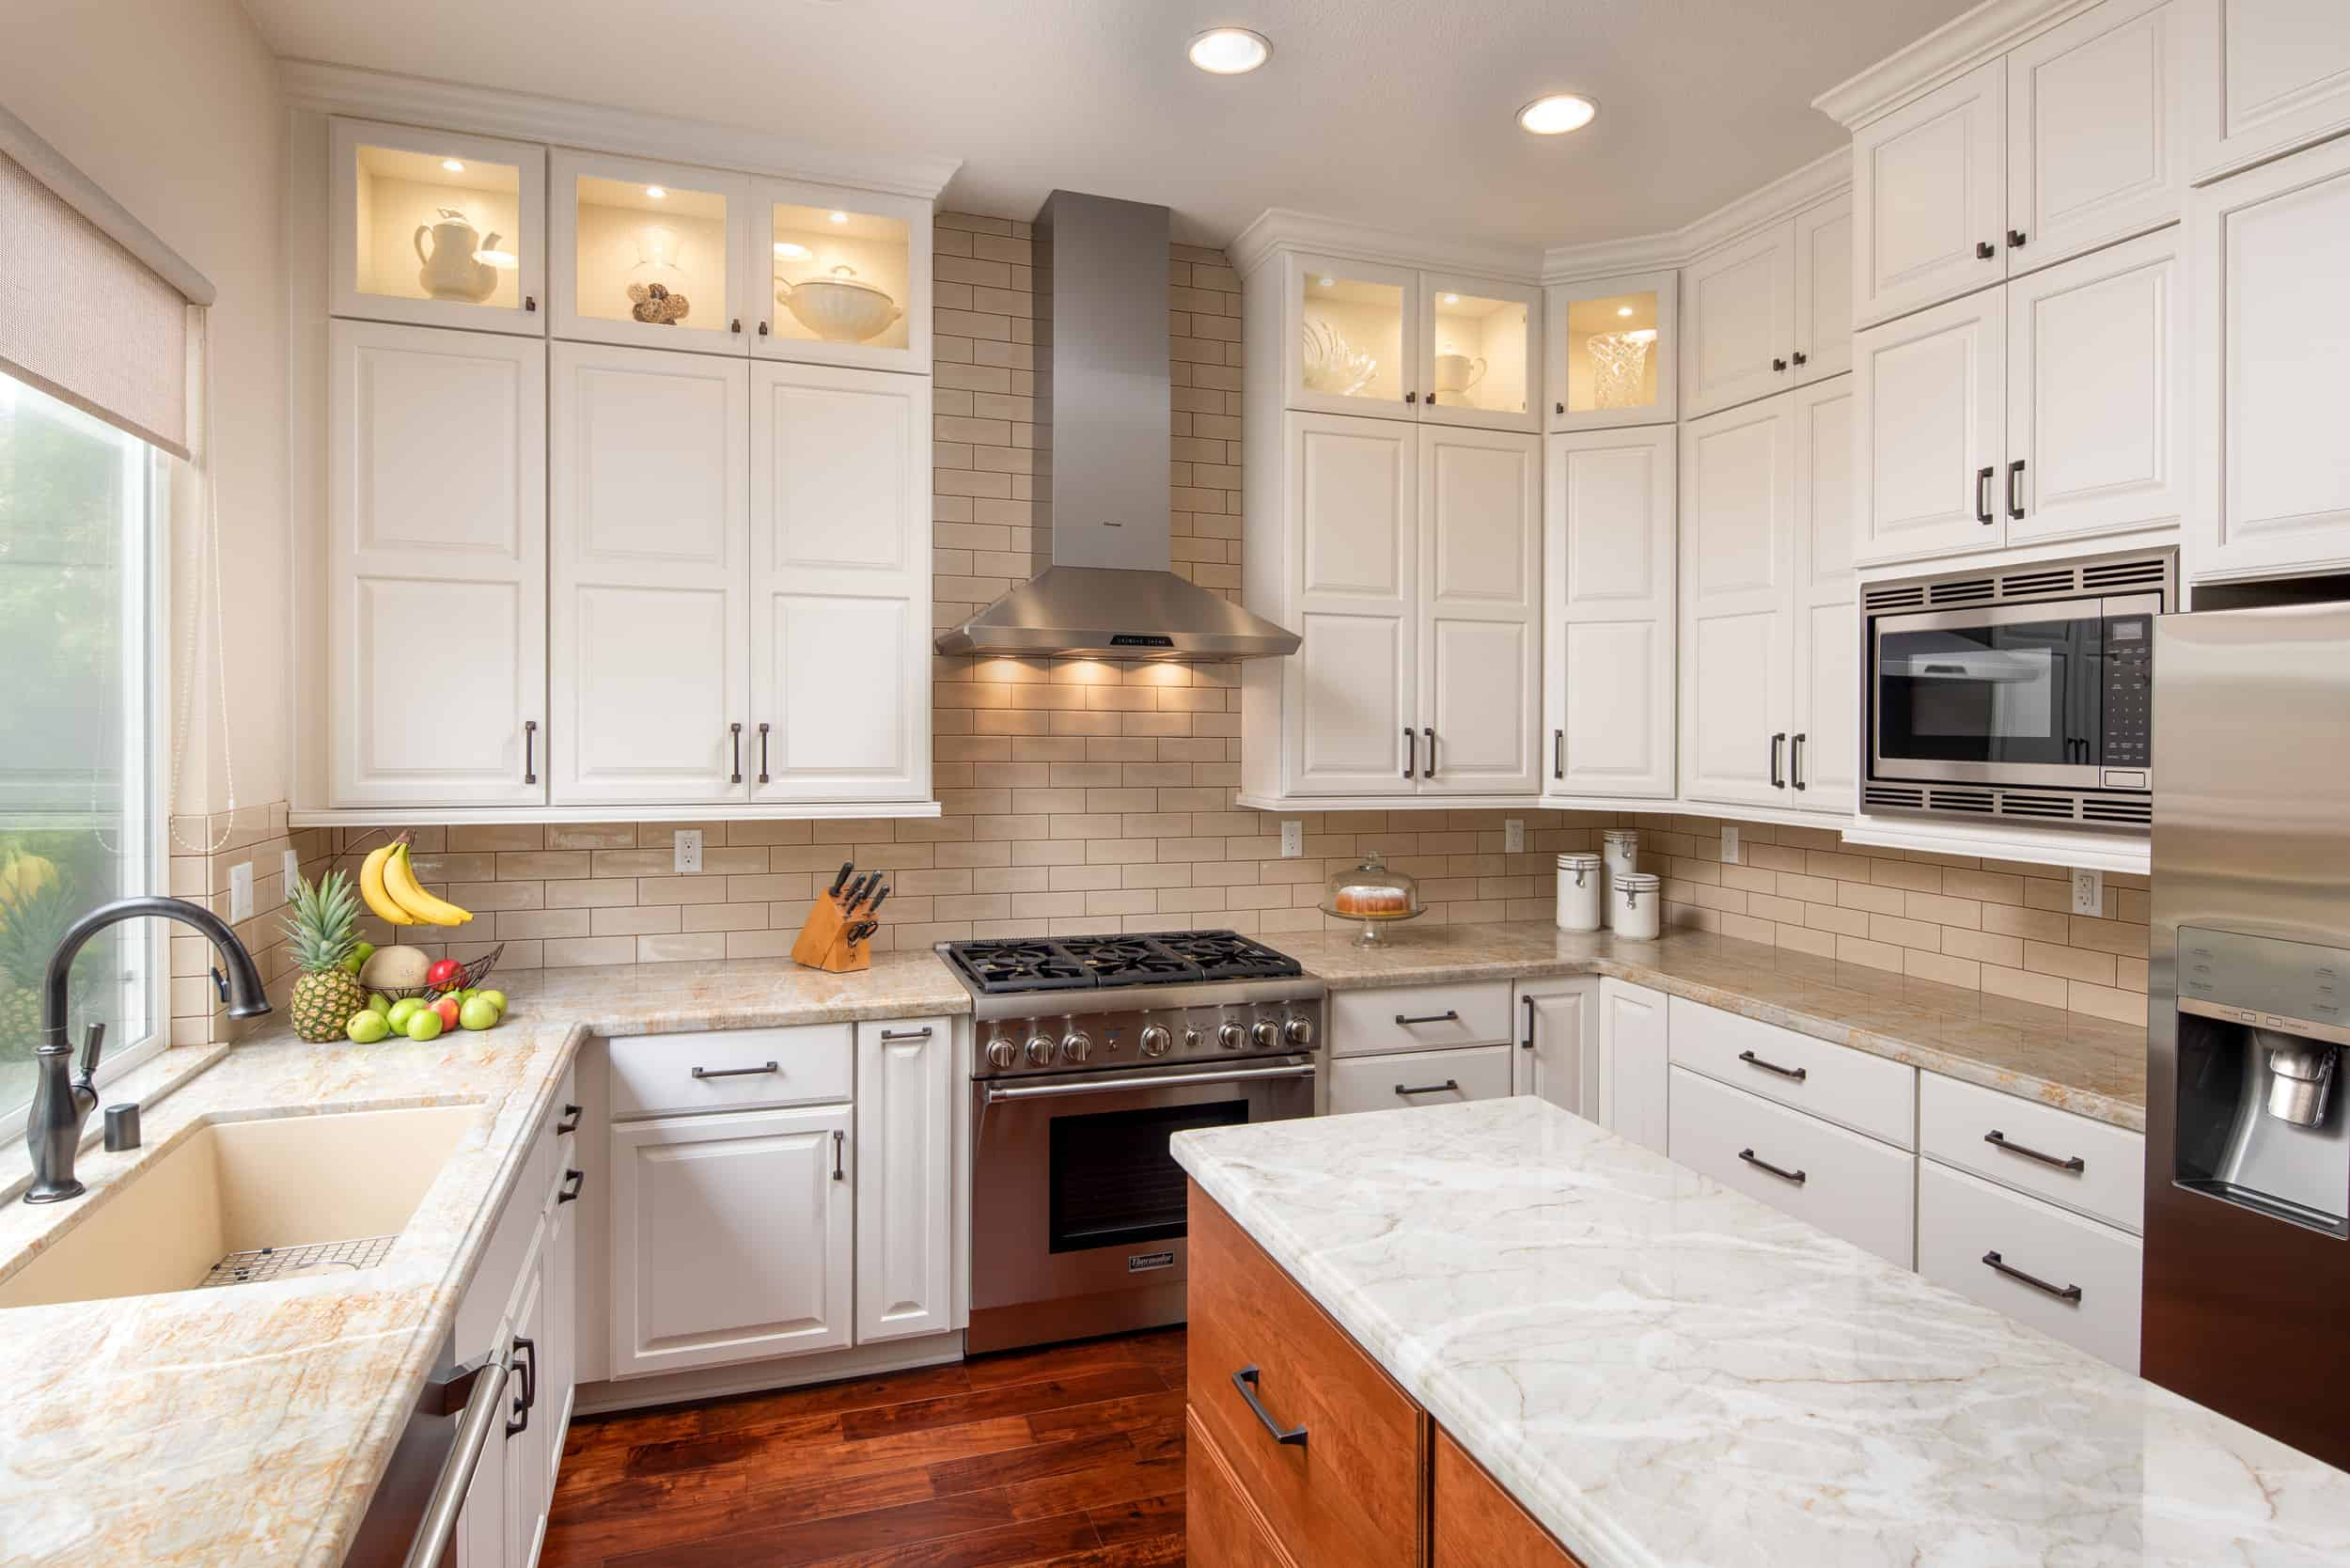 Kitchen Renovation Kitchen Remodeling Ideas Renovation Gallery Remodel Works